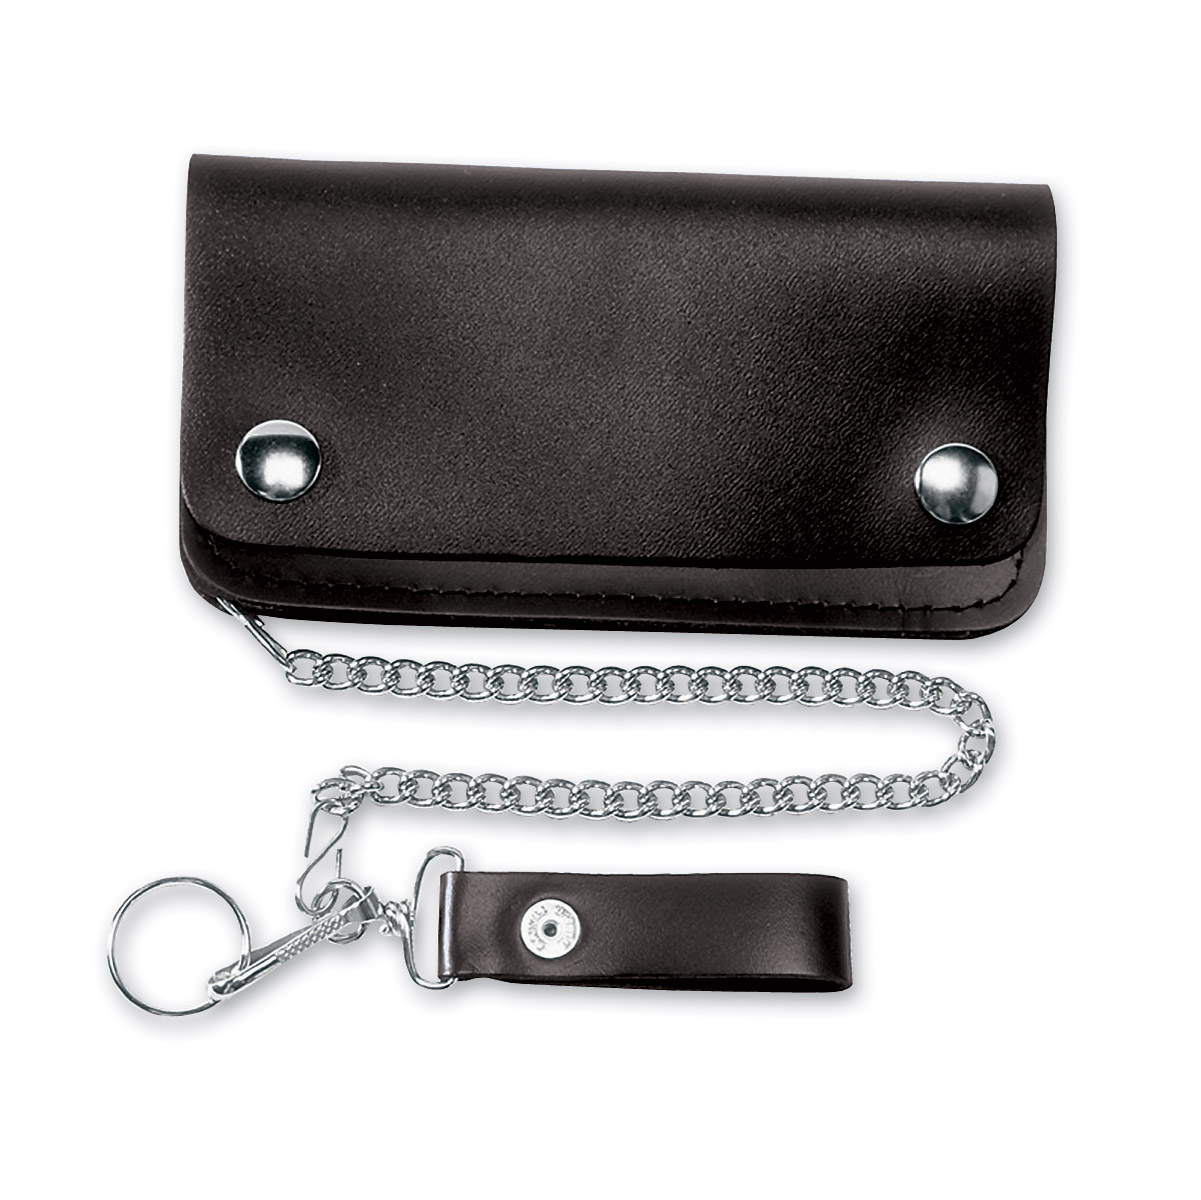 Carroll Leather 6″ Three-Pocket Chain Wallet